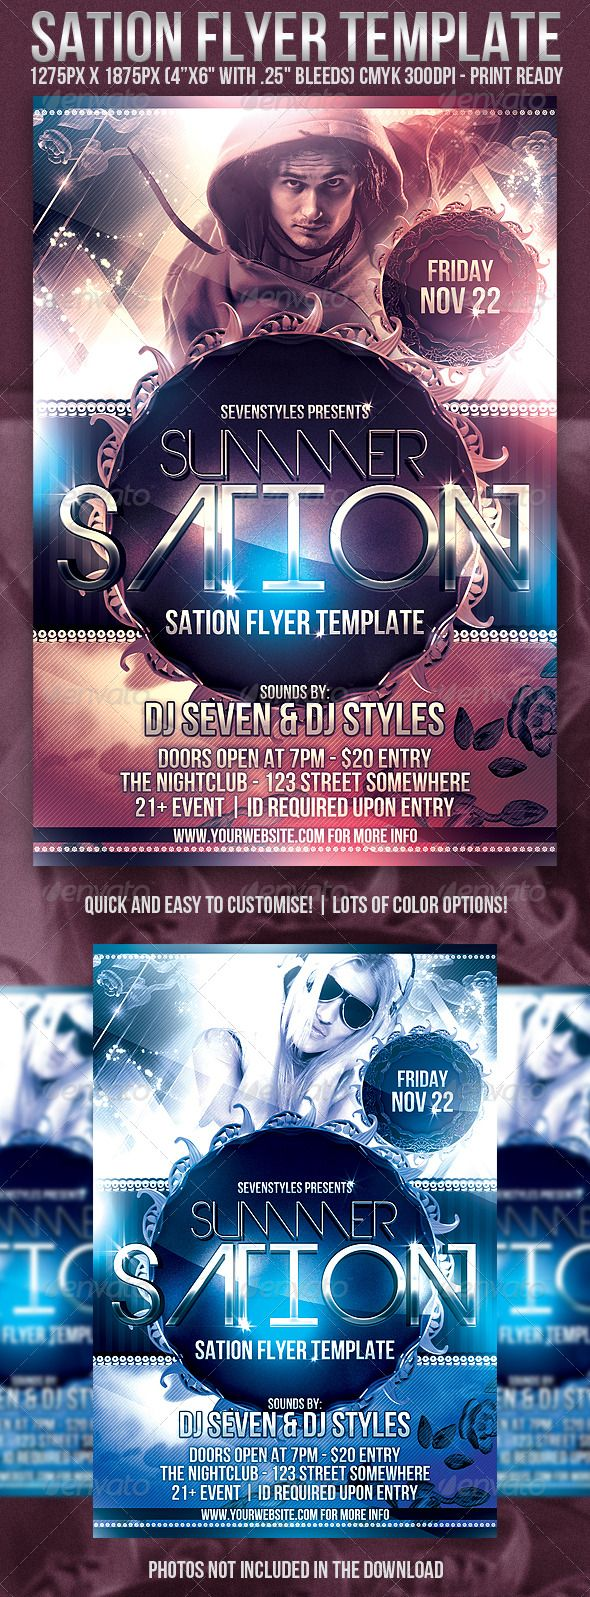 Best Dg  Flyers  Posters Images On   Flyer Design